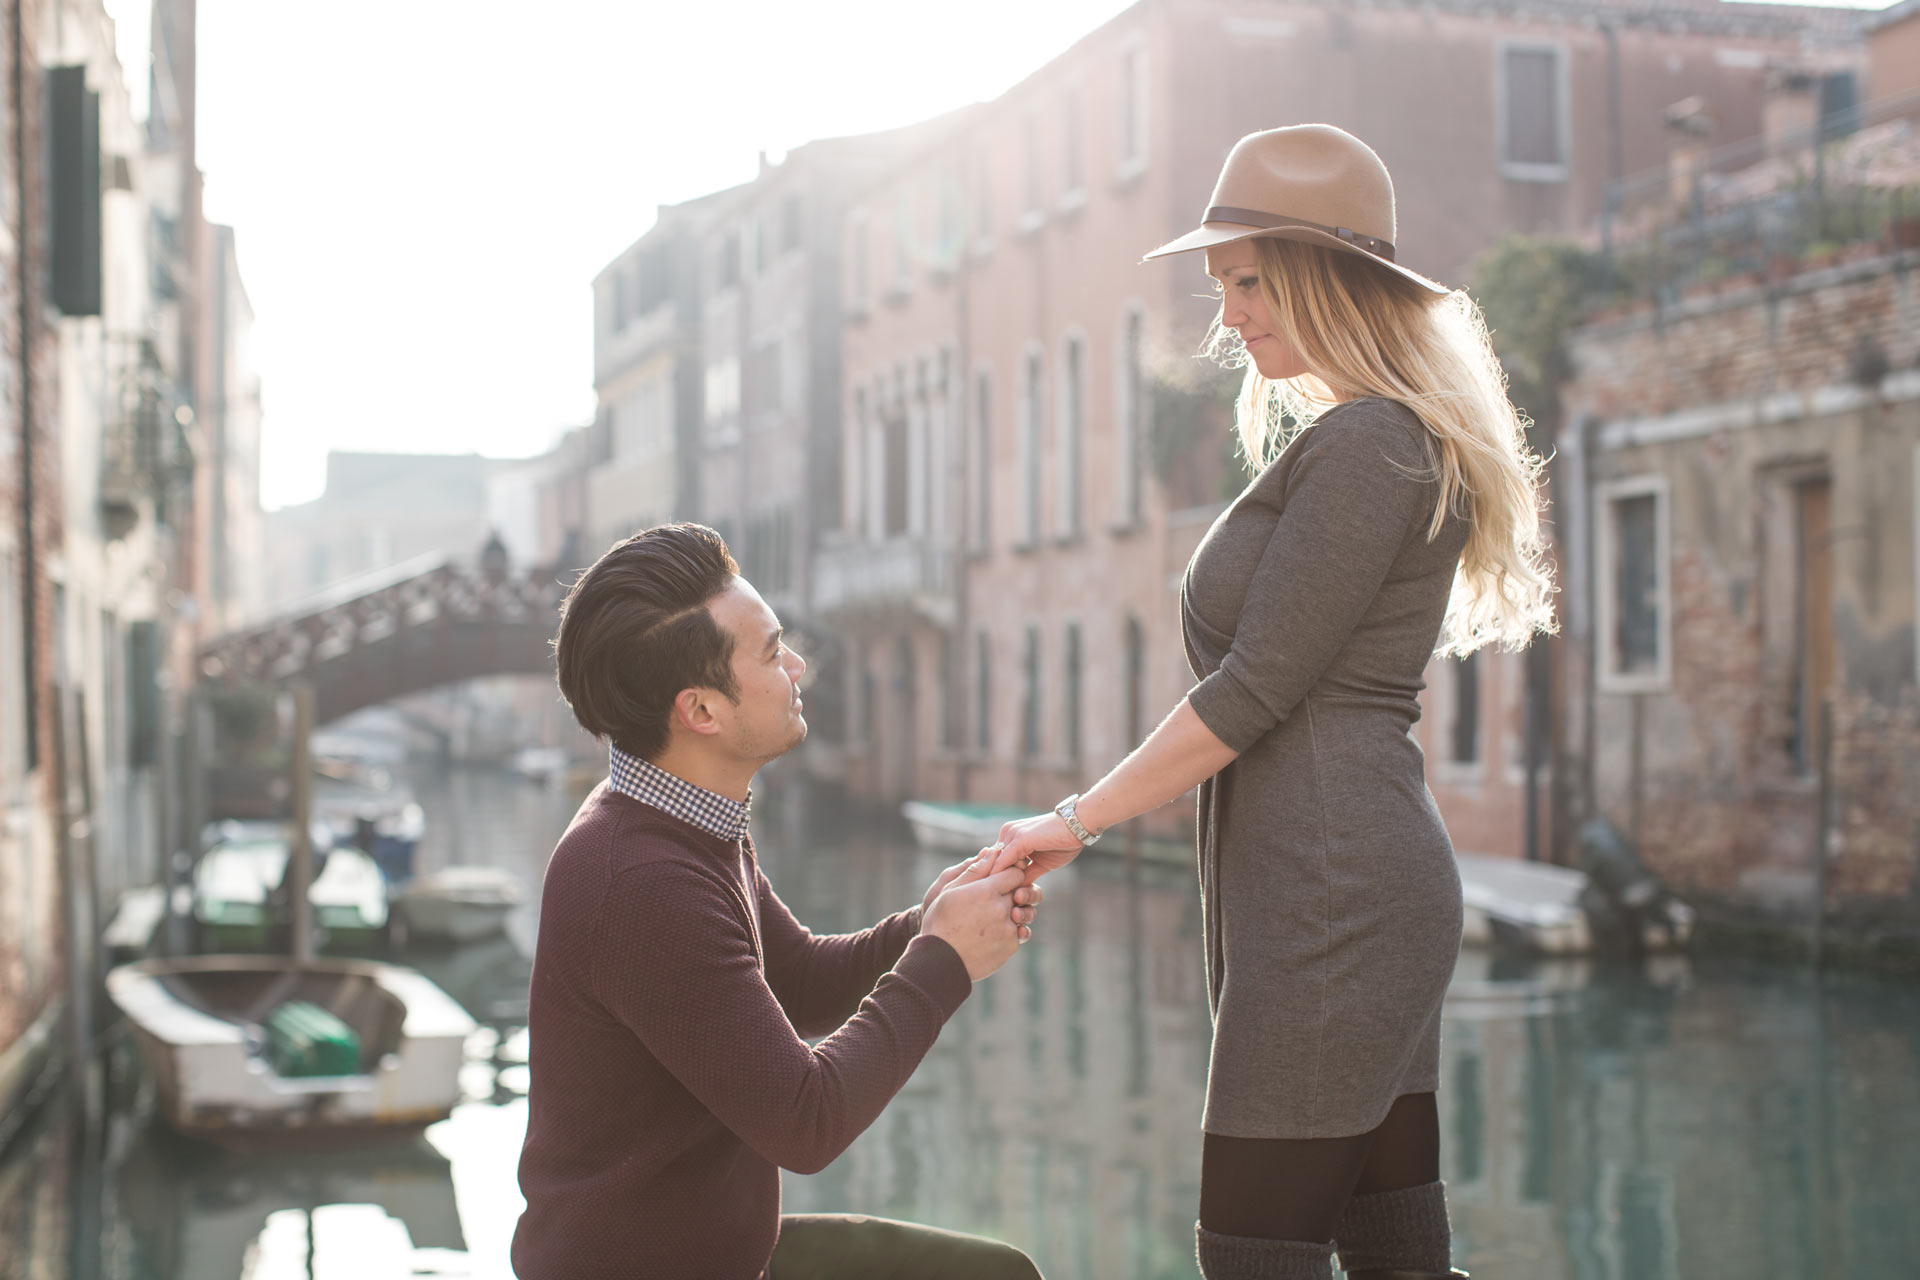 Minna-Øyvind-engagement-portrait-photo-shooting-Dorsoduro-Venezia-Venice